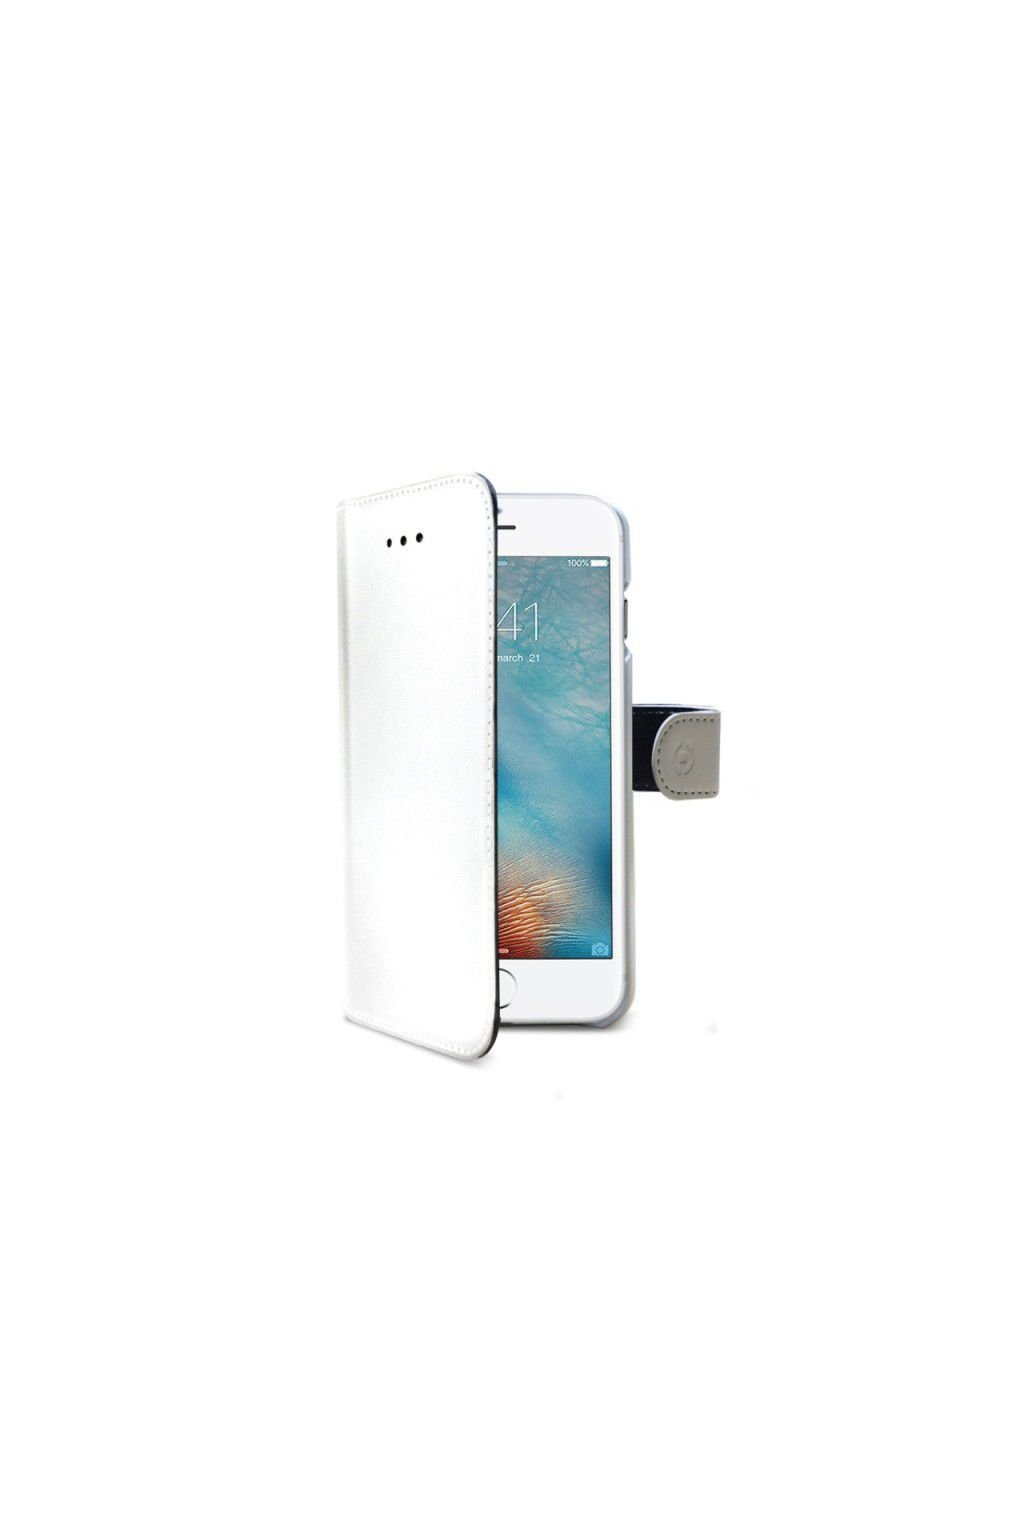 1637 celly wally bily kozenkovy obal iphone 7 8 white